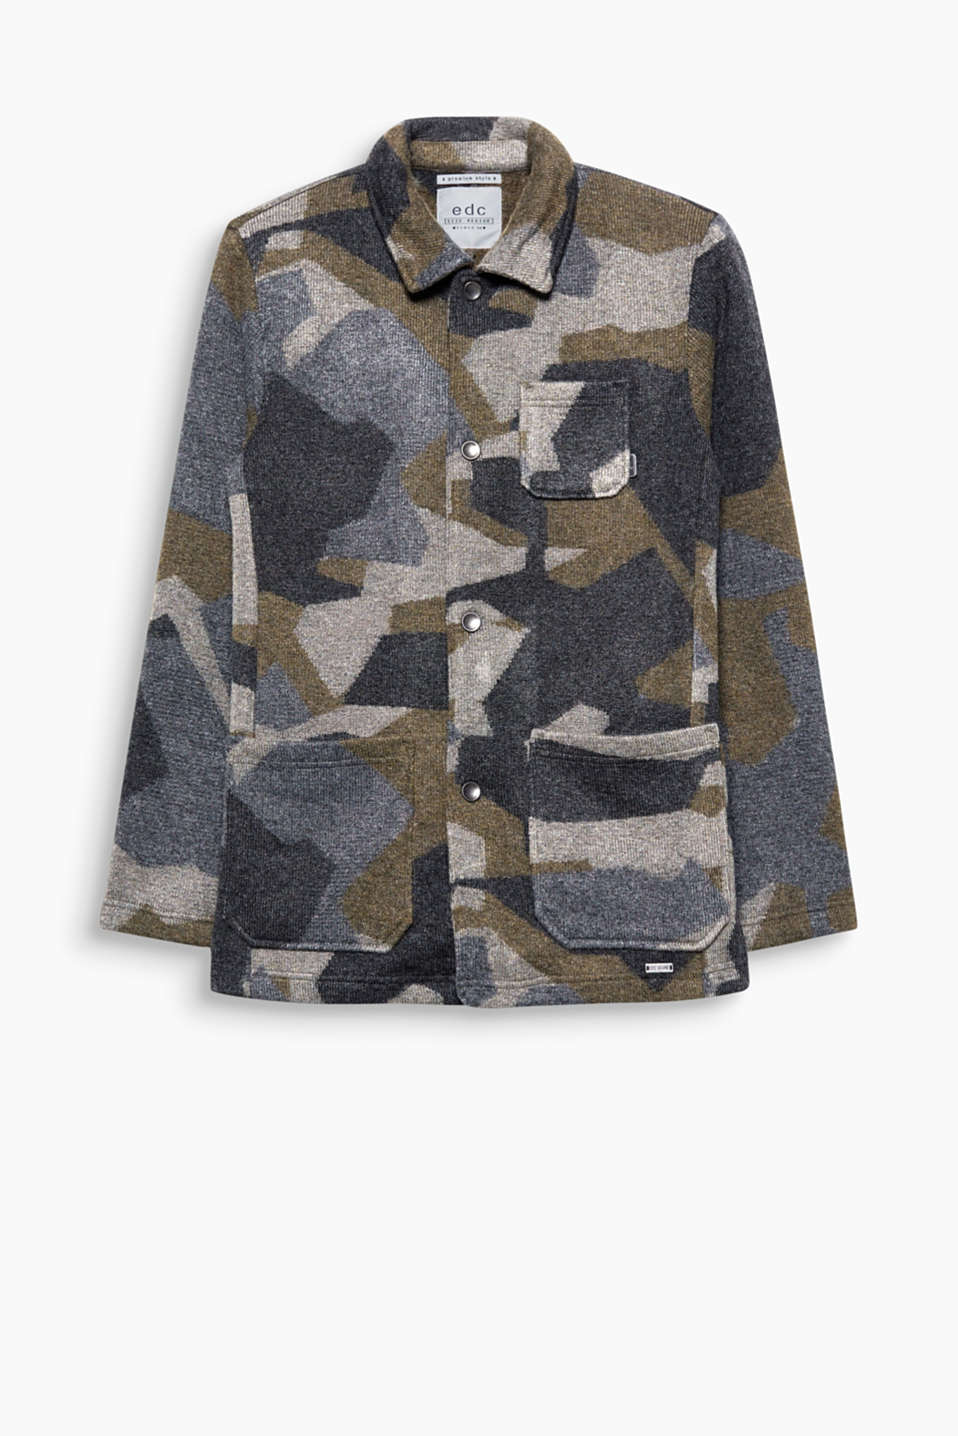 New camouflage! This cardigan is crafted from high-quality knit yarn with wool.